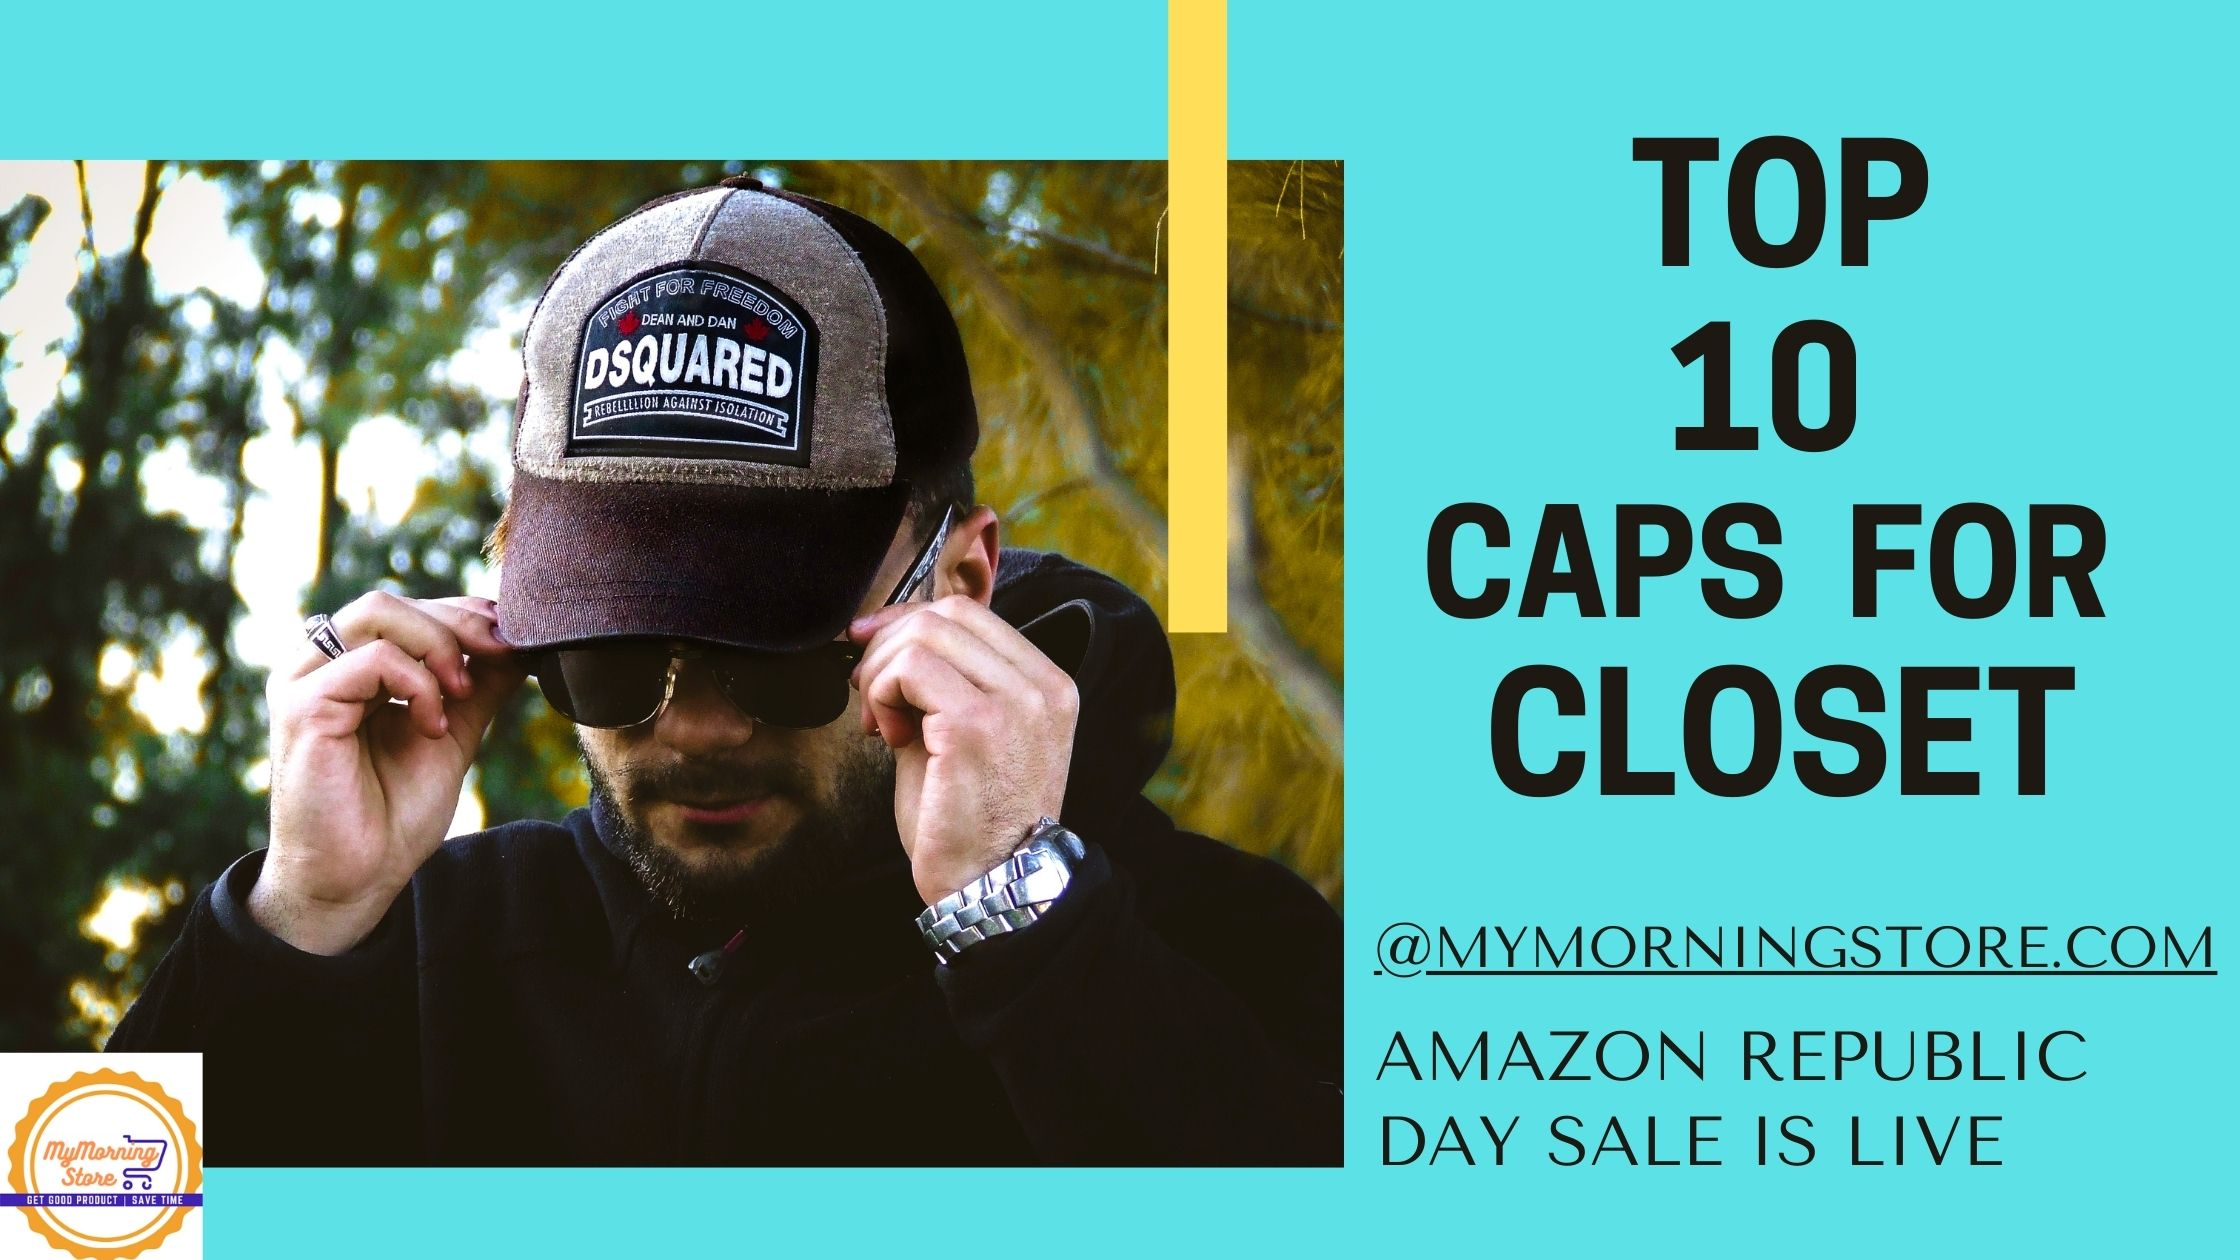 Top 10 Caps for Closet @mymorningstore